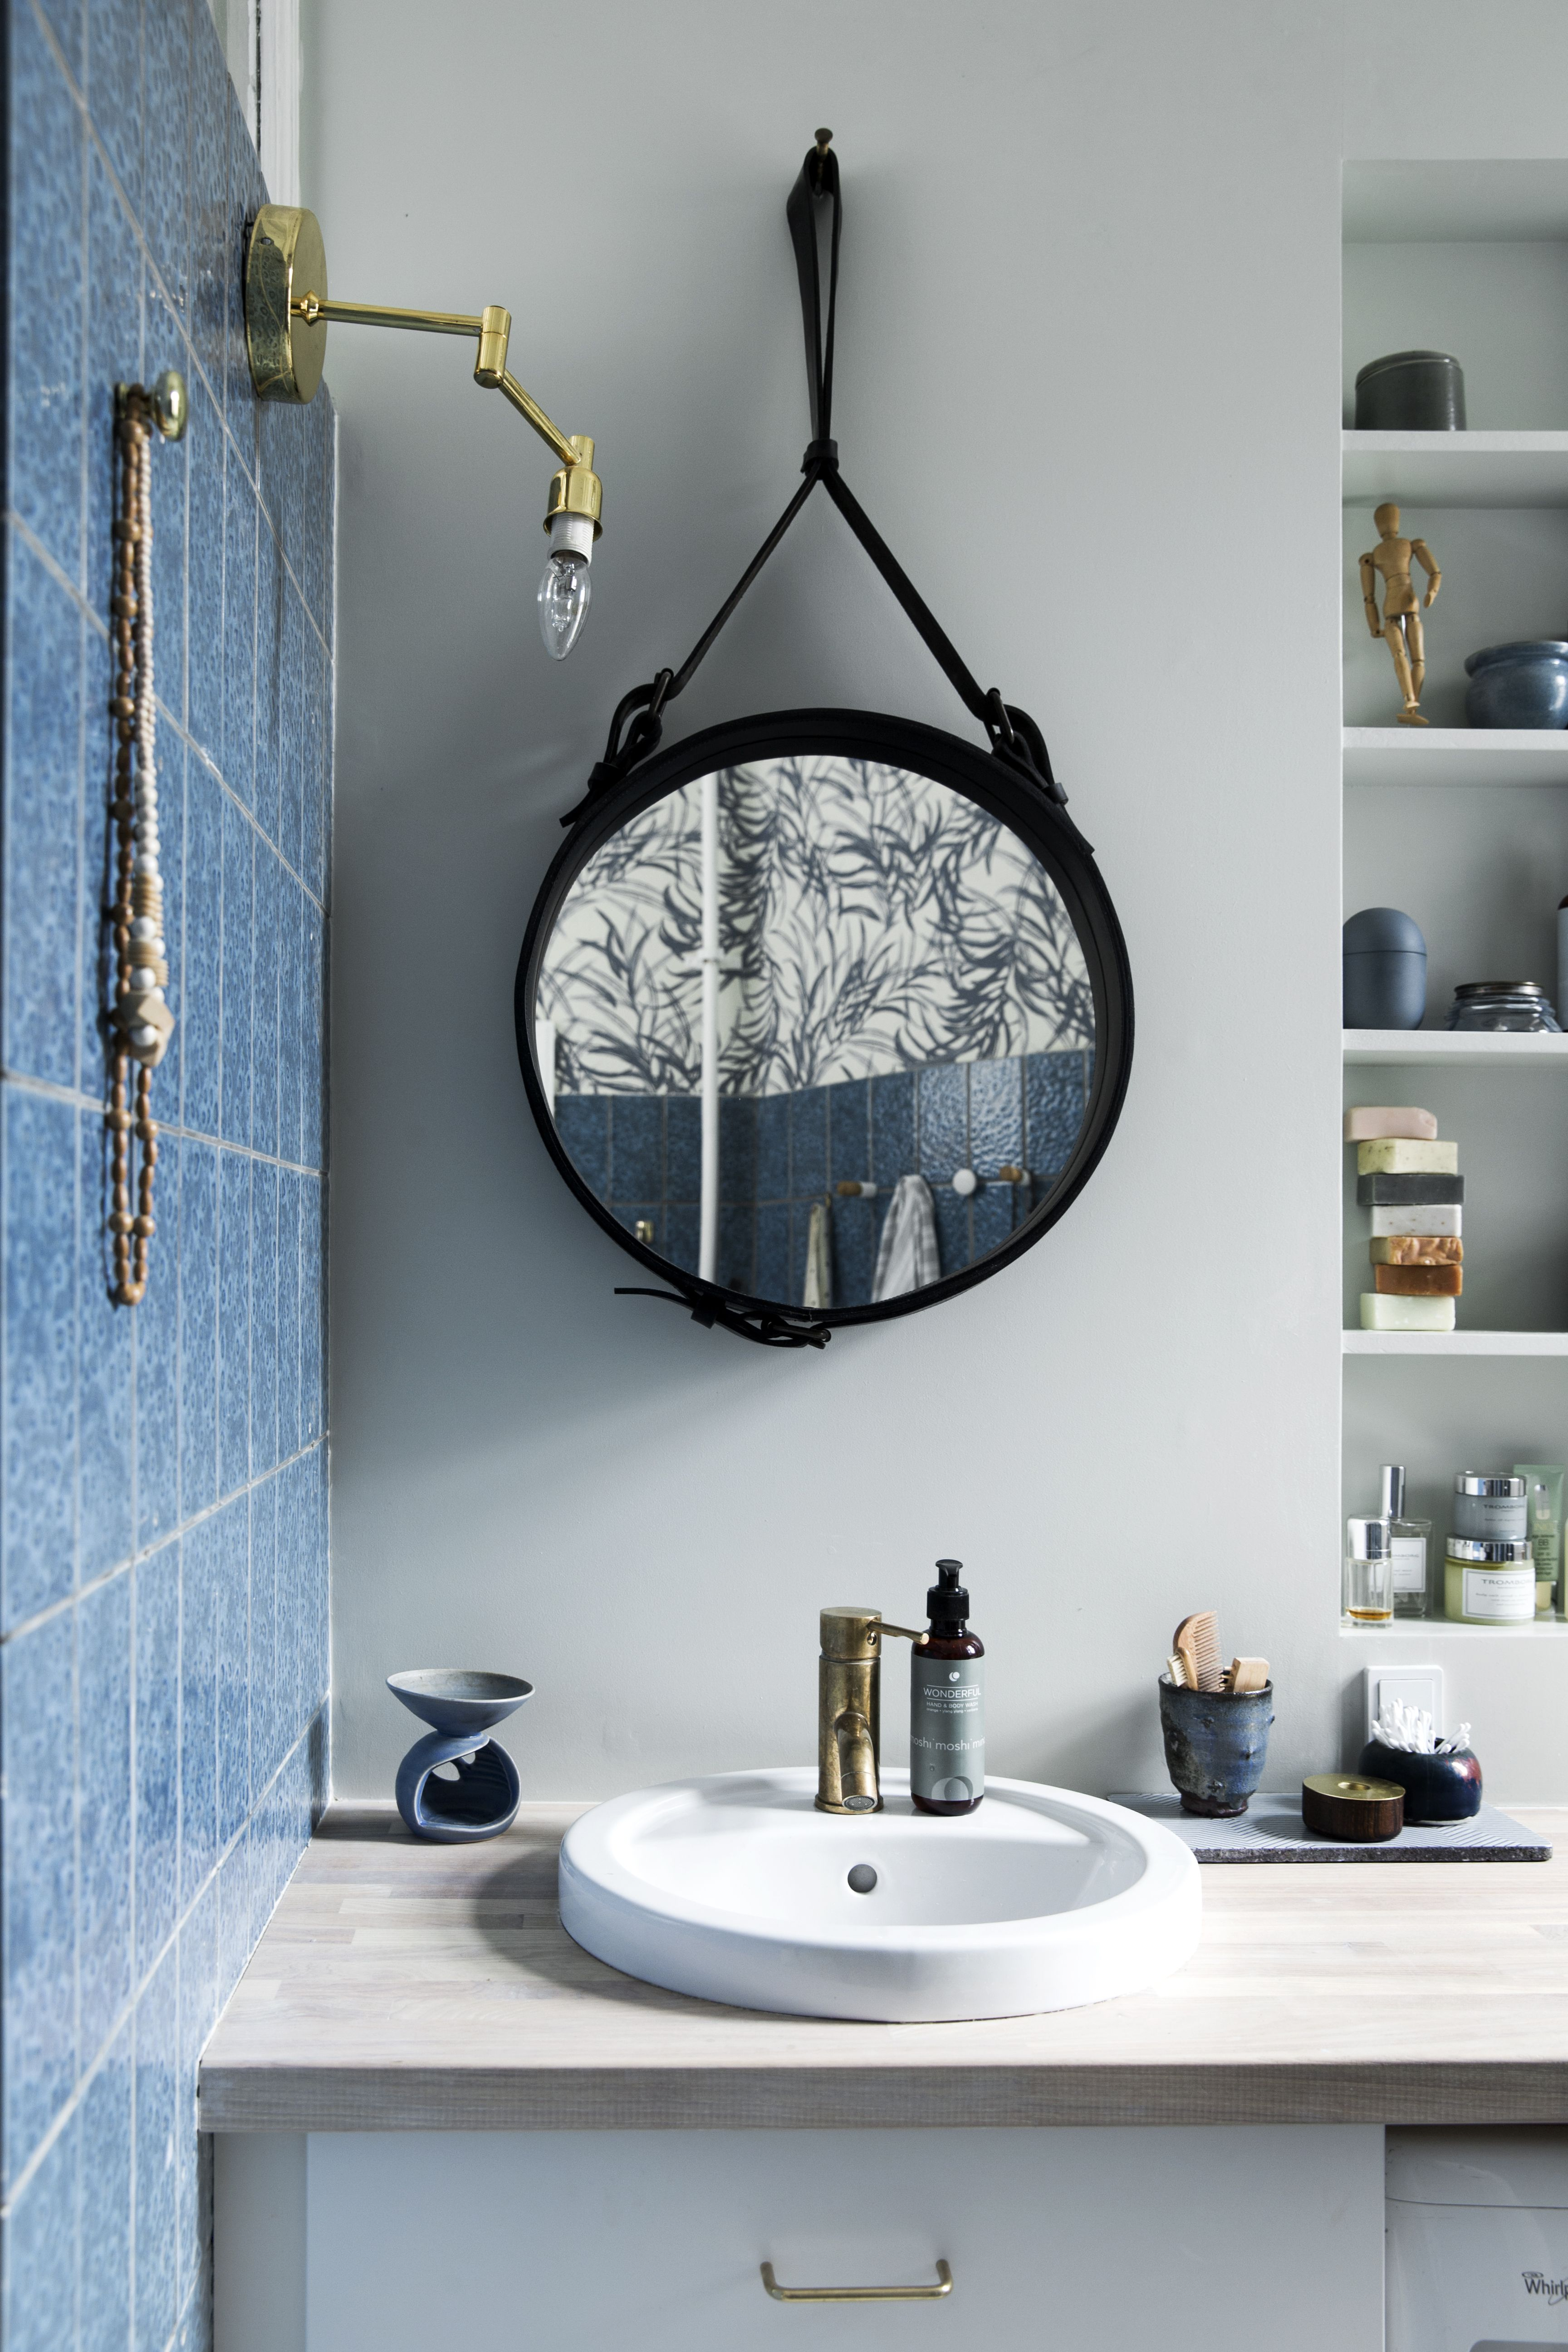 Awesome Retro Bathroom Mette Helena Rasmussen Stylist Photo: Tia Borgsmidt